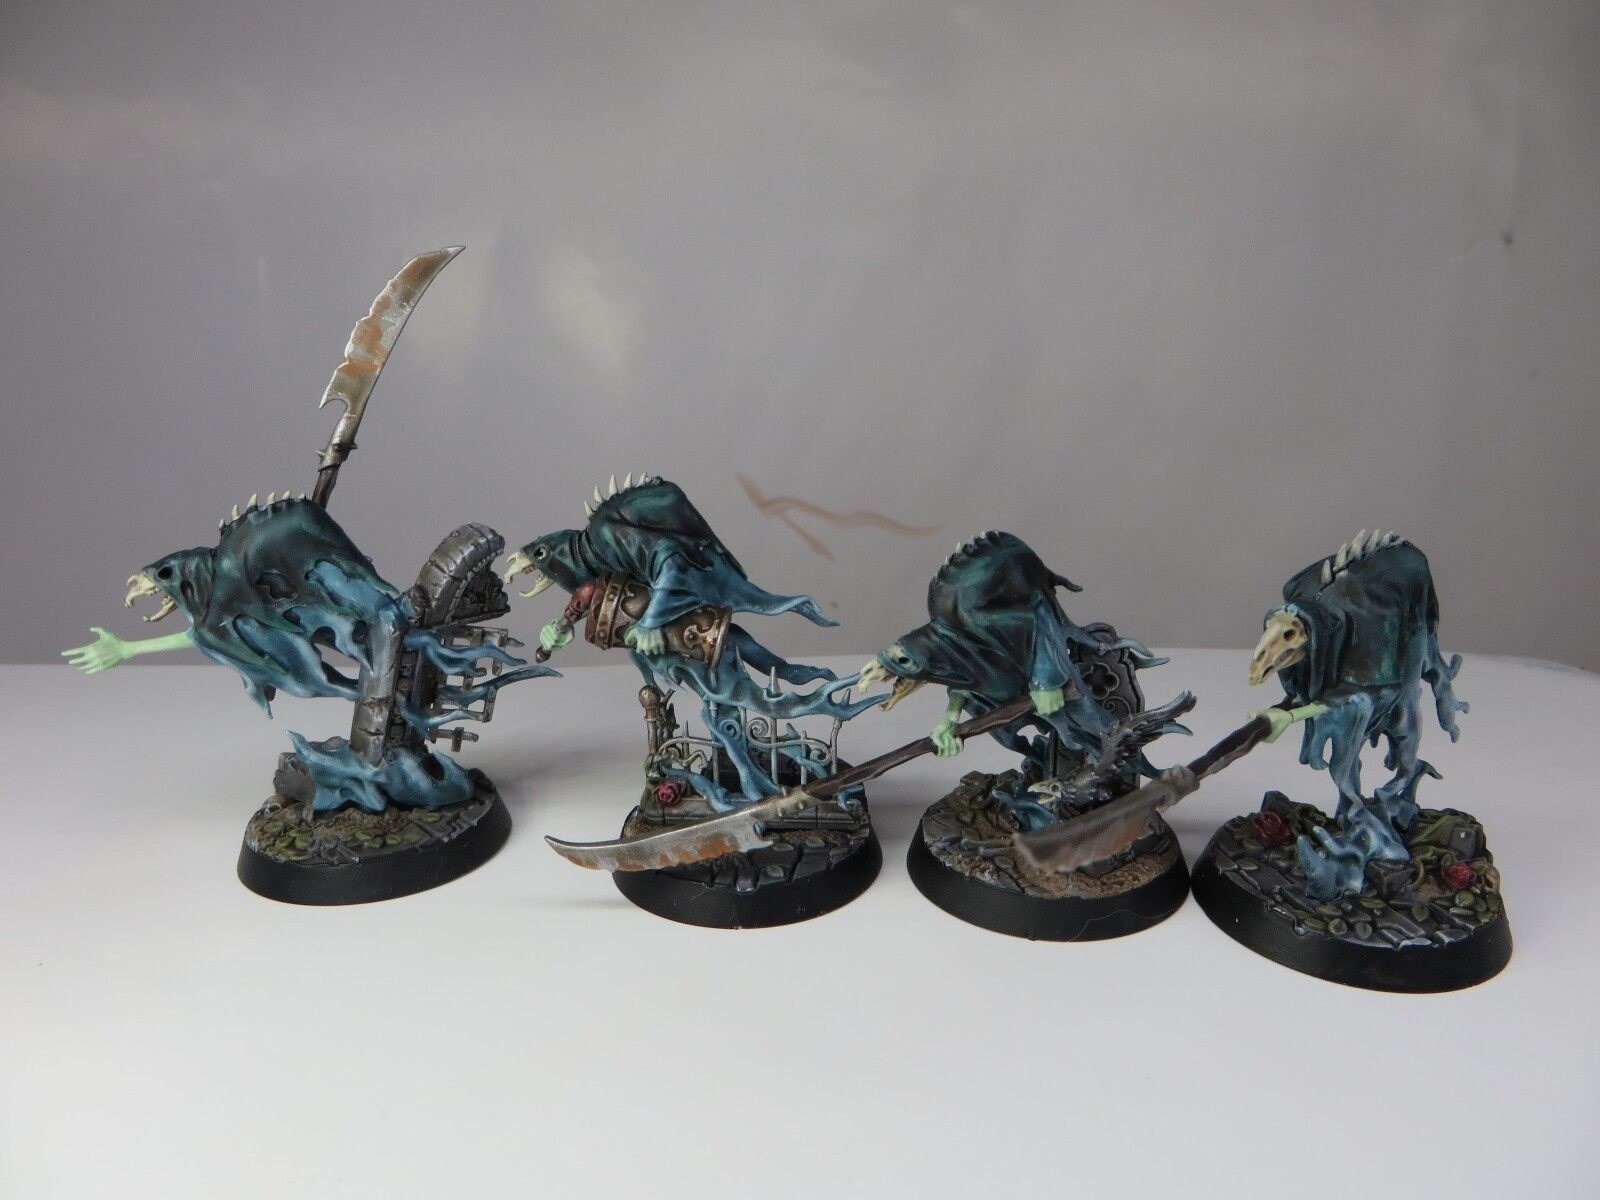 Glaivewraith Stalkers Painted Age of Sigmar Soul Wars Nighthaunt